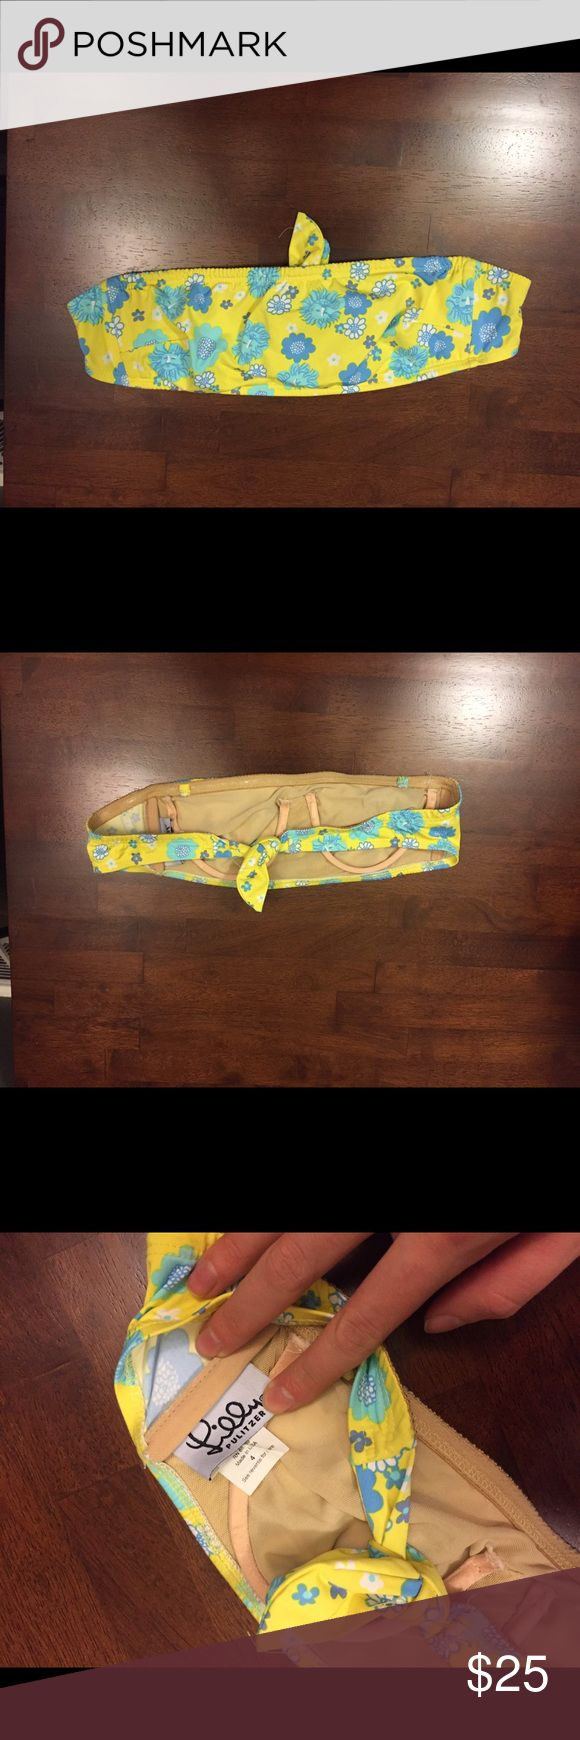 Lilly Pulitzer Blue Yellow Floral Bikini Top Tube Excellent condition! Thank you for looking! Strapless bikini bandeau  #ygwyt002 Lilly Pulitzer Swim Bikinis